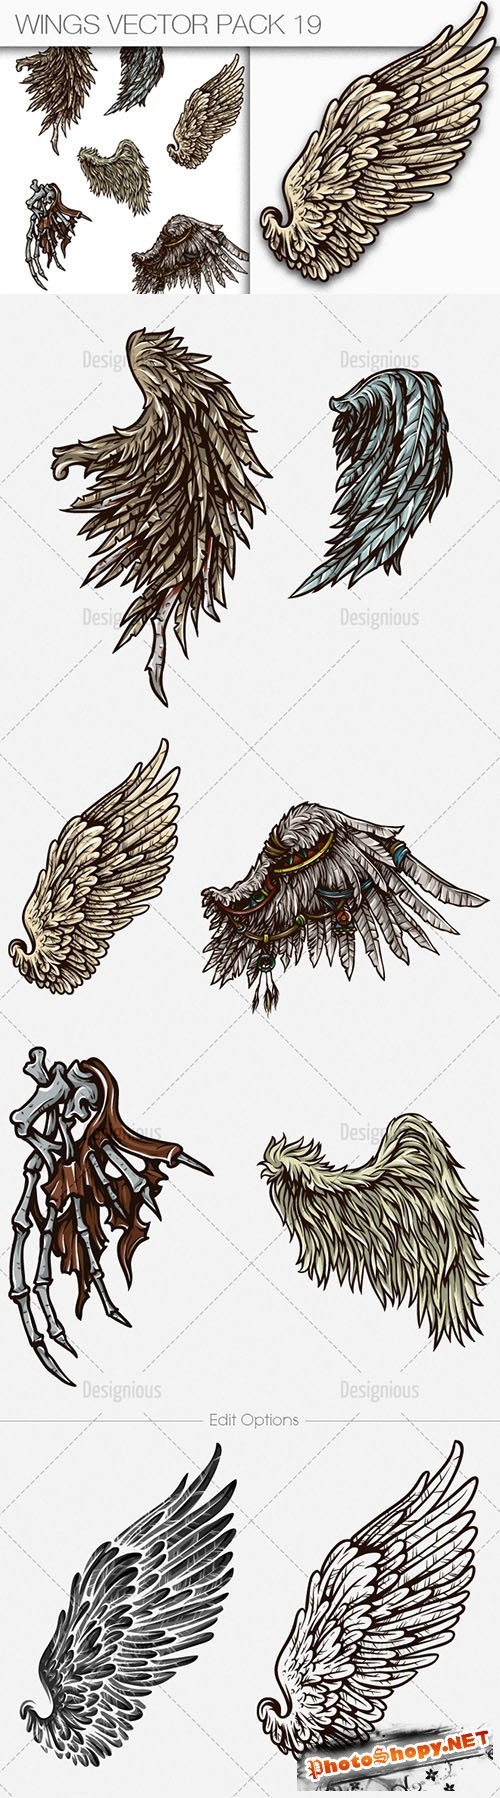 Wings Vector Illustrations Pack 19